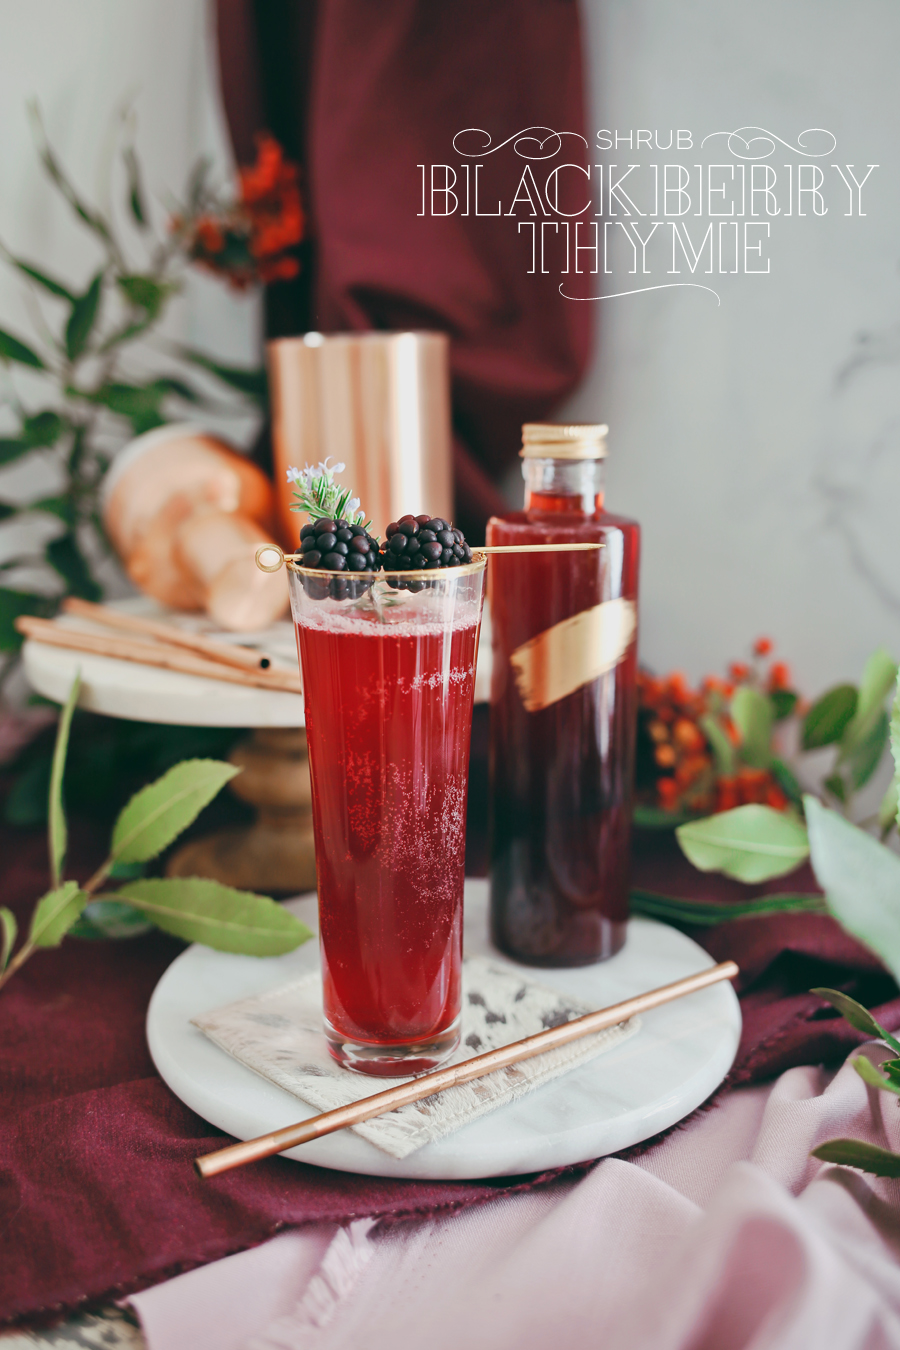 04_Blackberry-Thyme-Shrub-Cocktail-Dine-X-Design.jpg